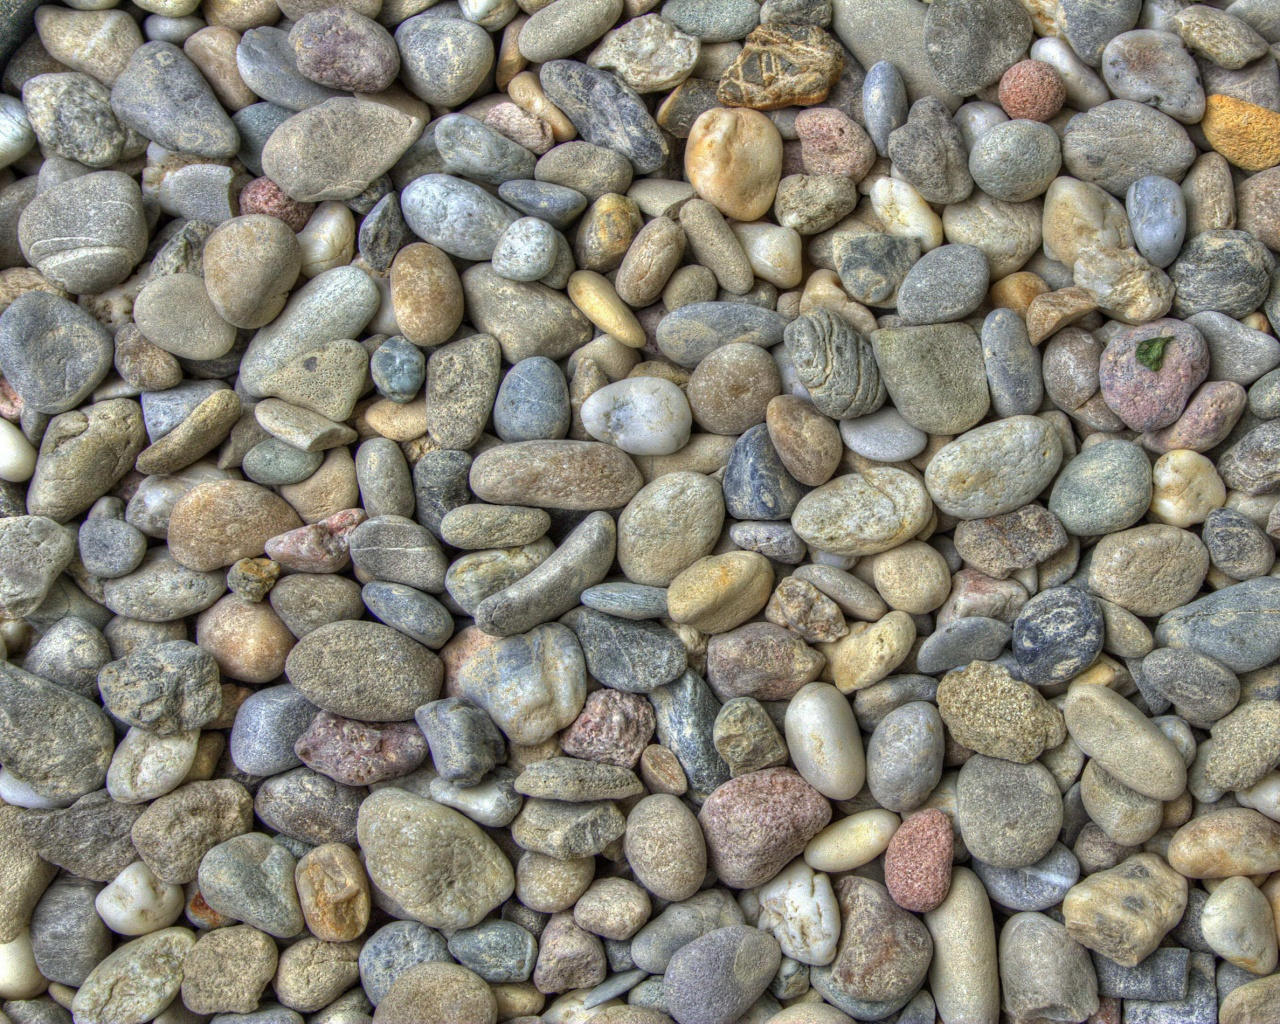 stones, pebble, download photo, stones texture